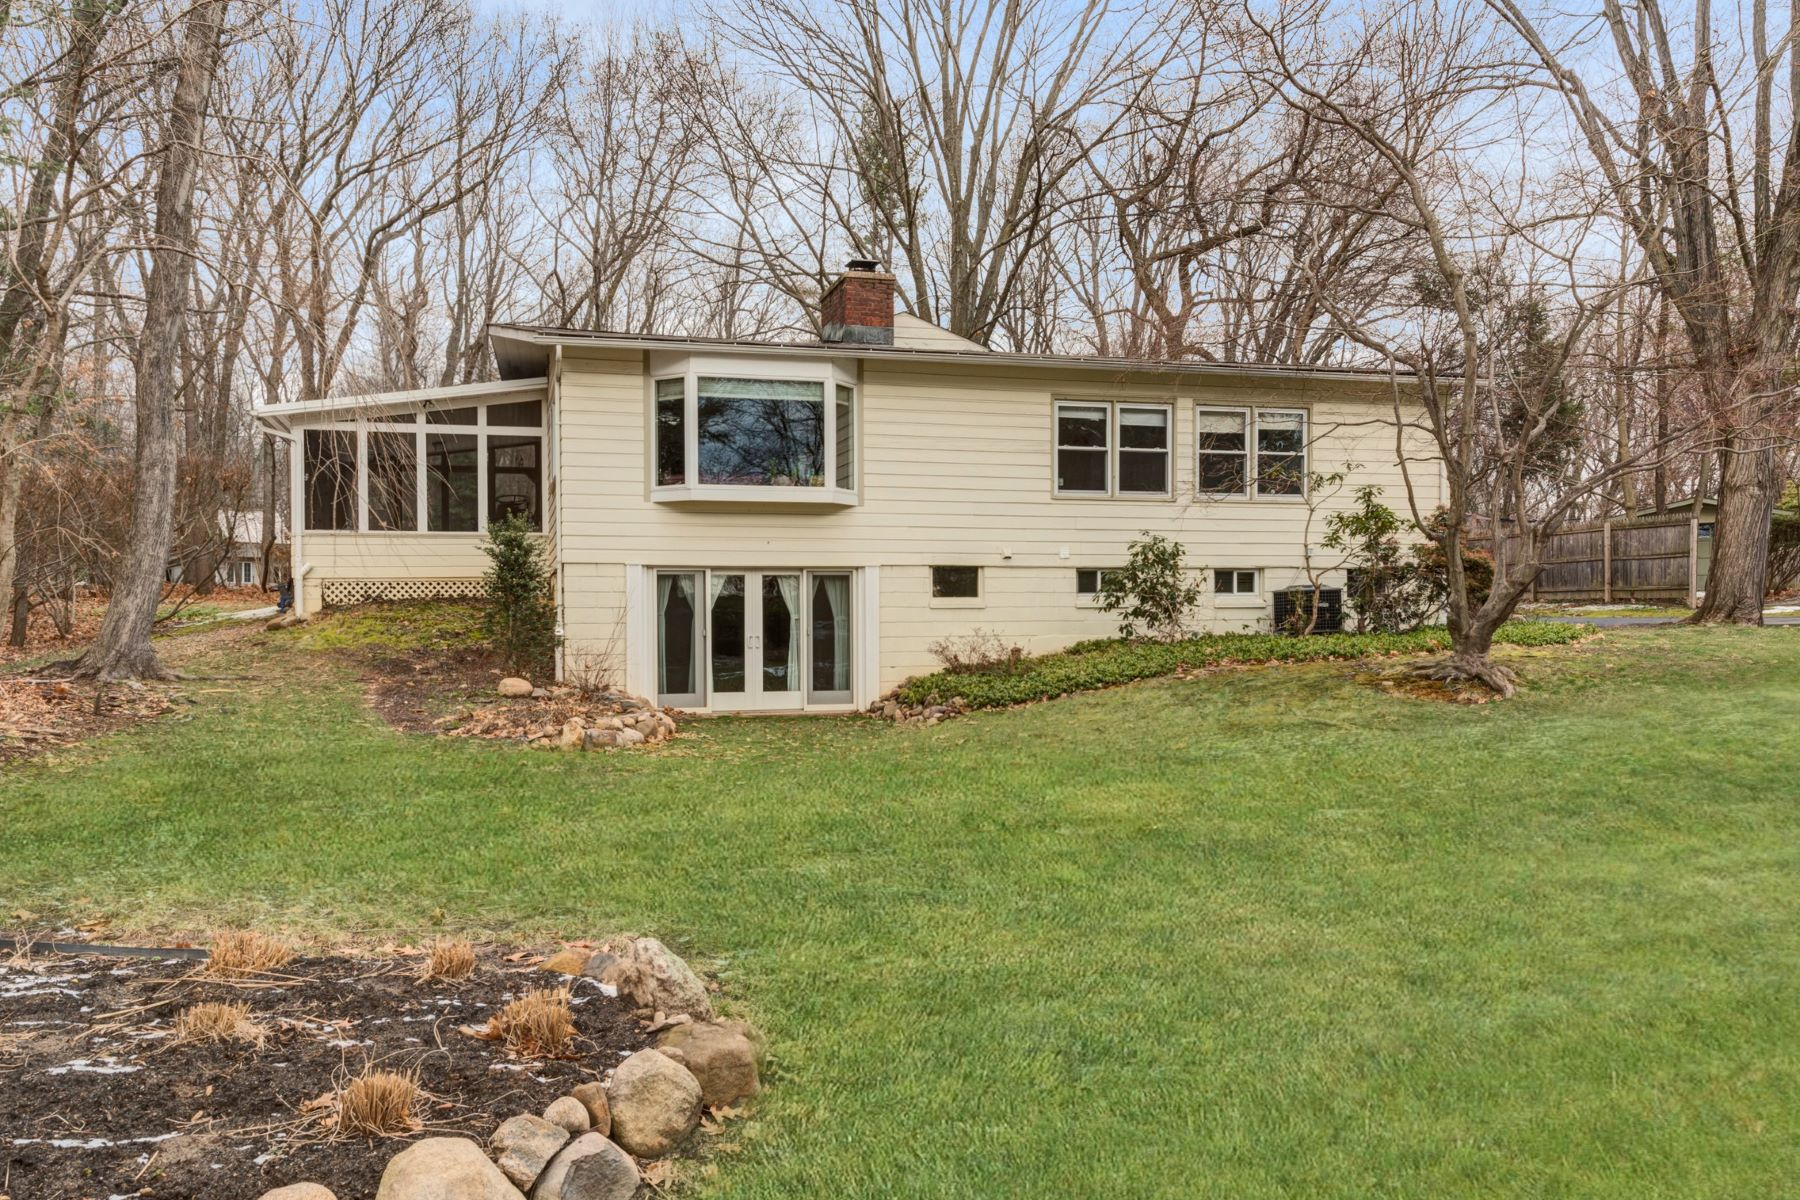 Single Family Home for Sale at Mid-Century Modern Home 35 Hickory Hill Road Tappan, New York 10983 United States